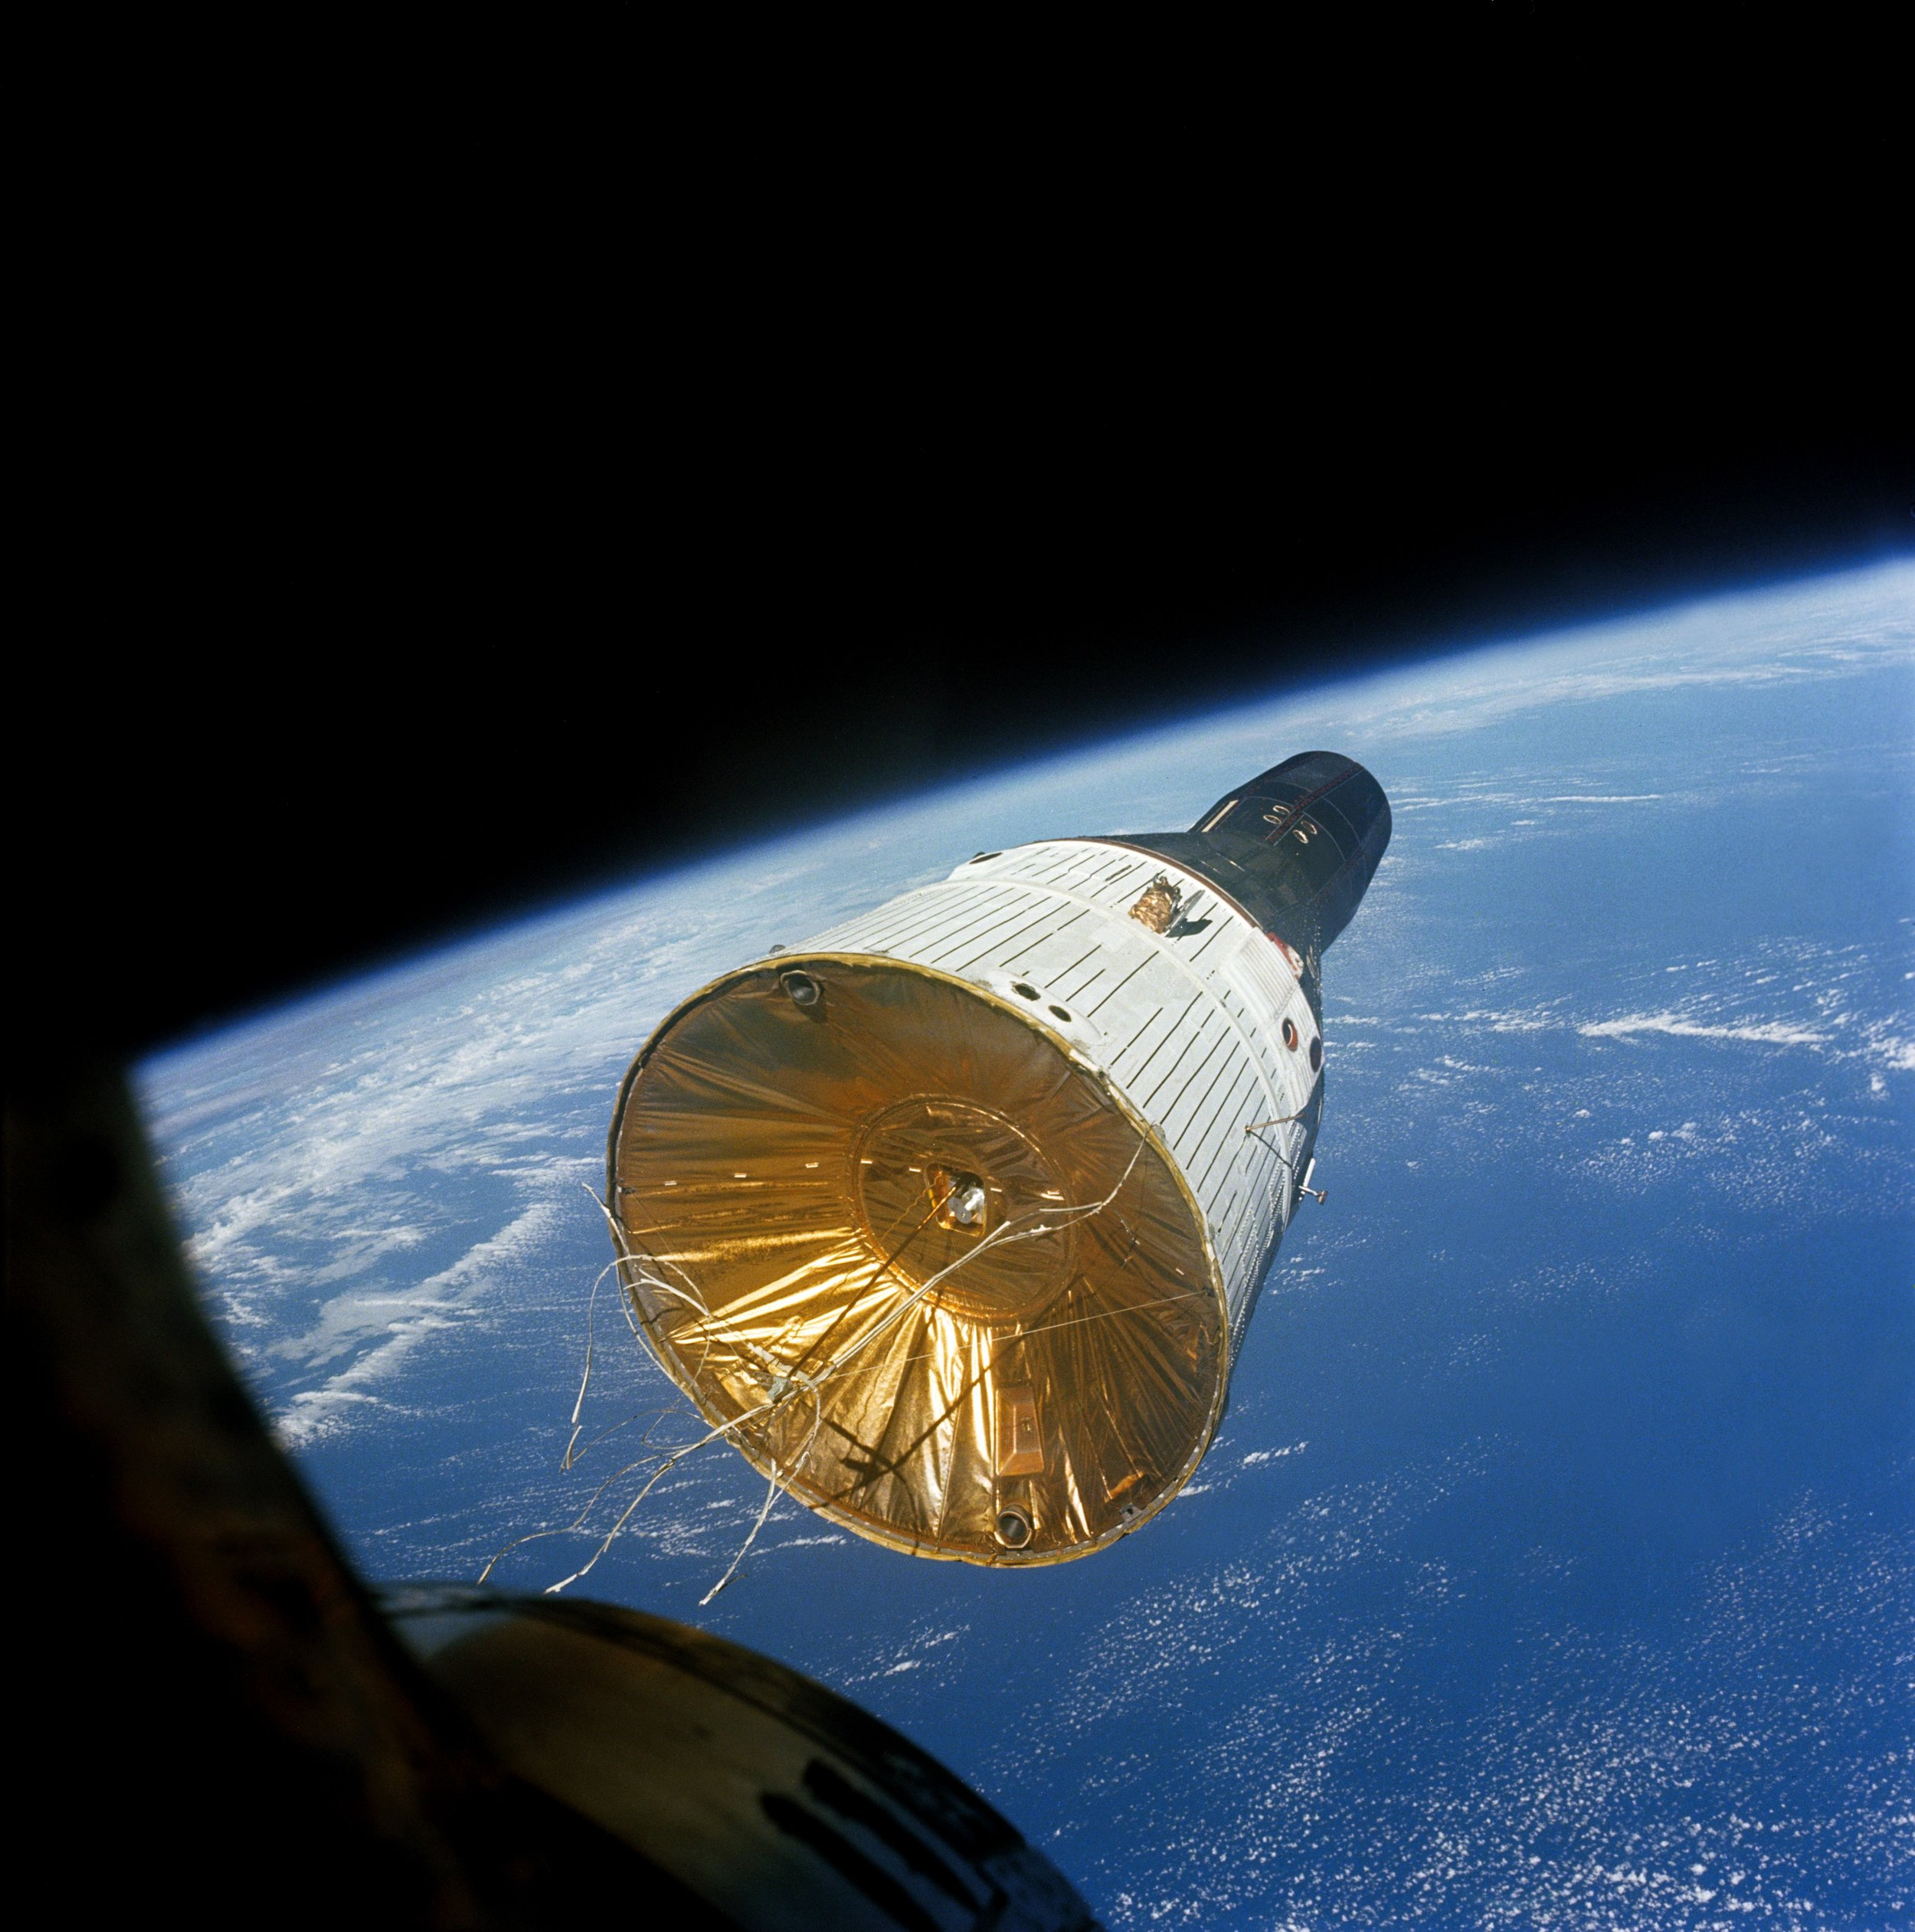 Gemini VI Mission Image - Rendezvous with Gemini VII 1965